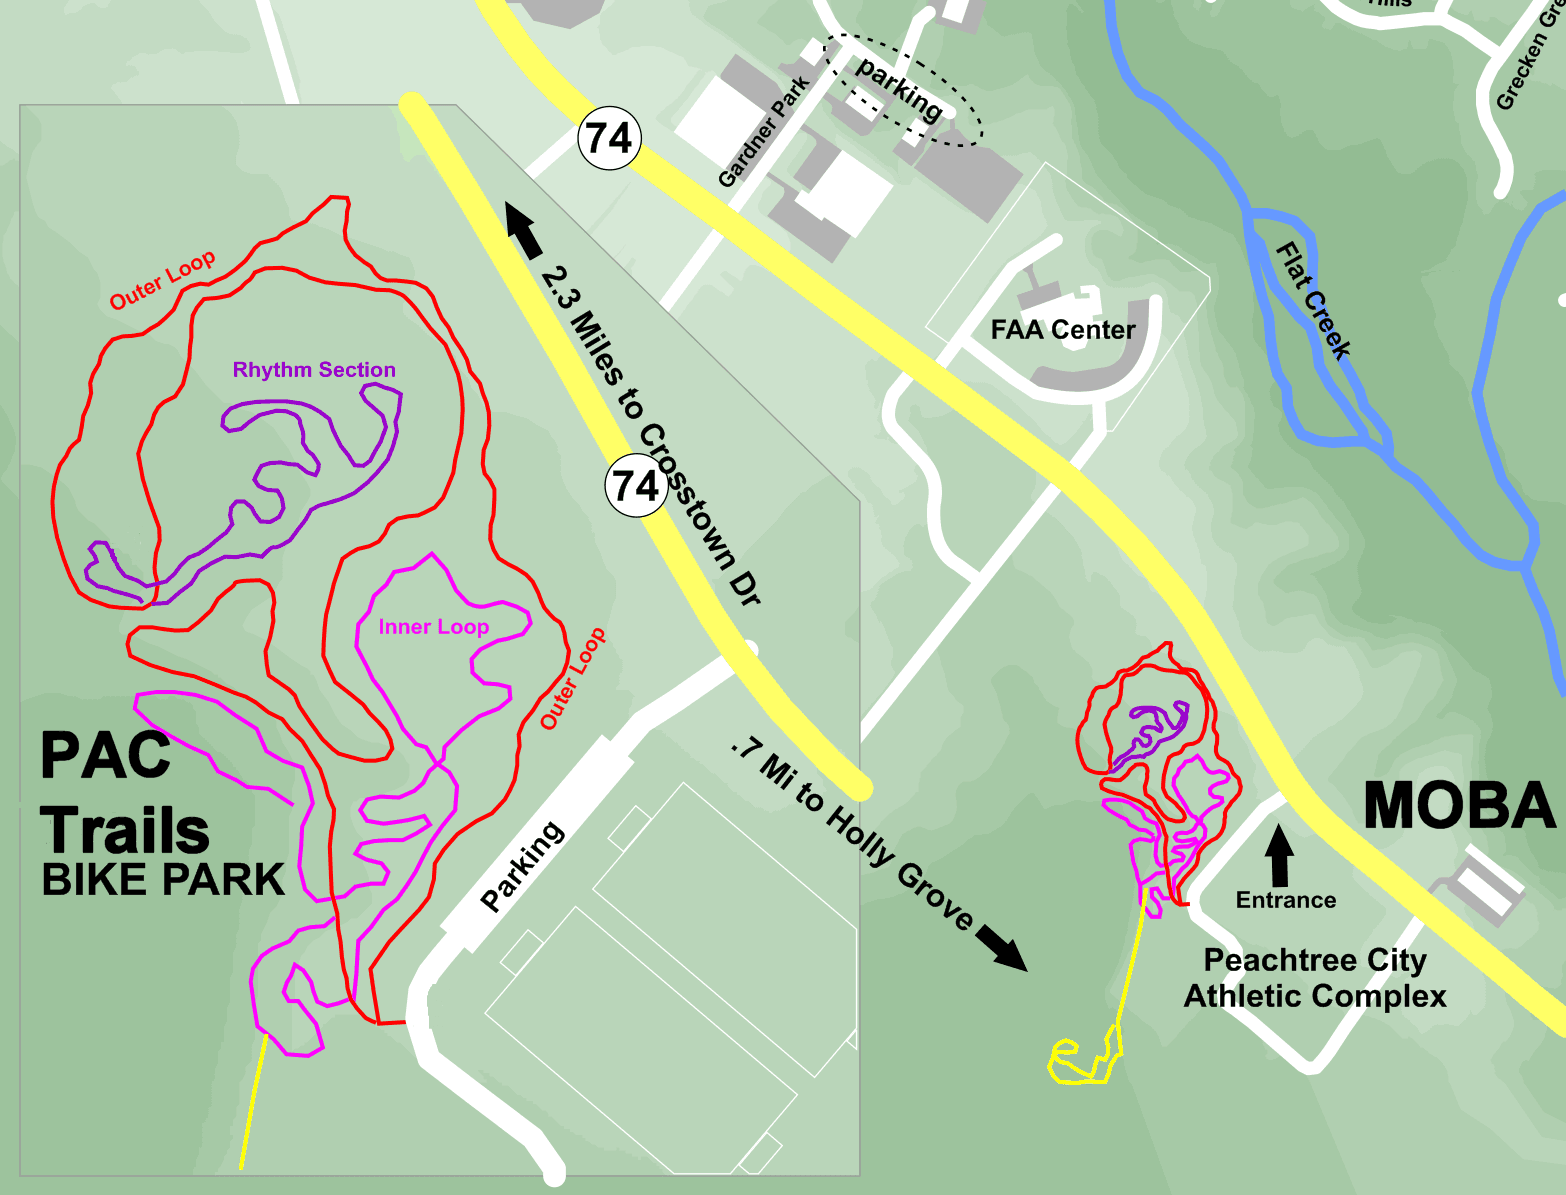 Map of trails at the Peachtree City Athletic Complex